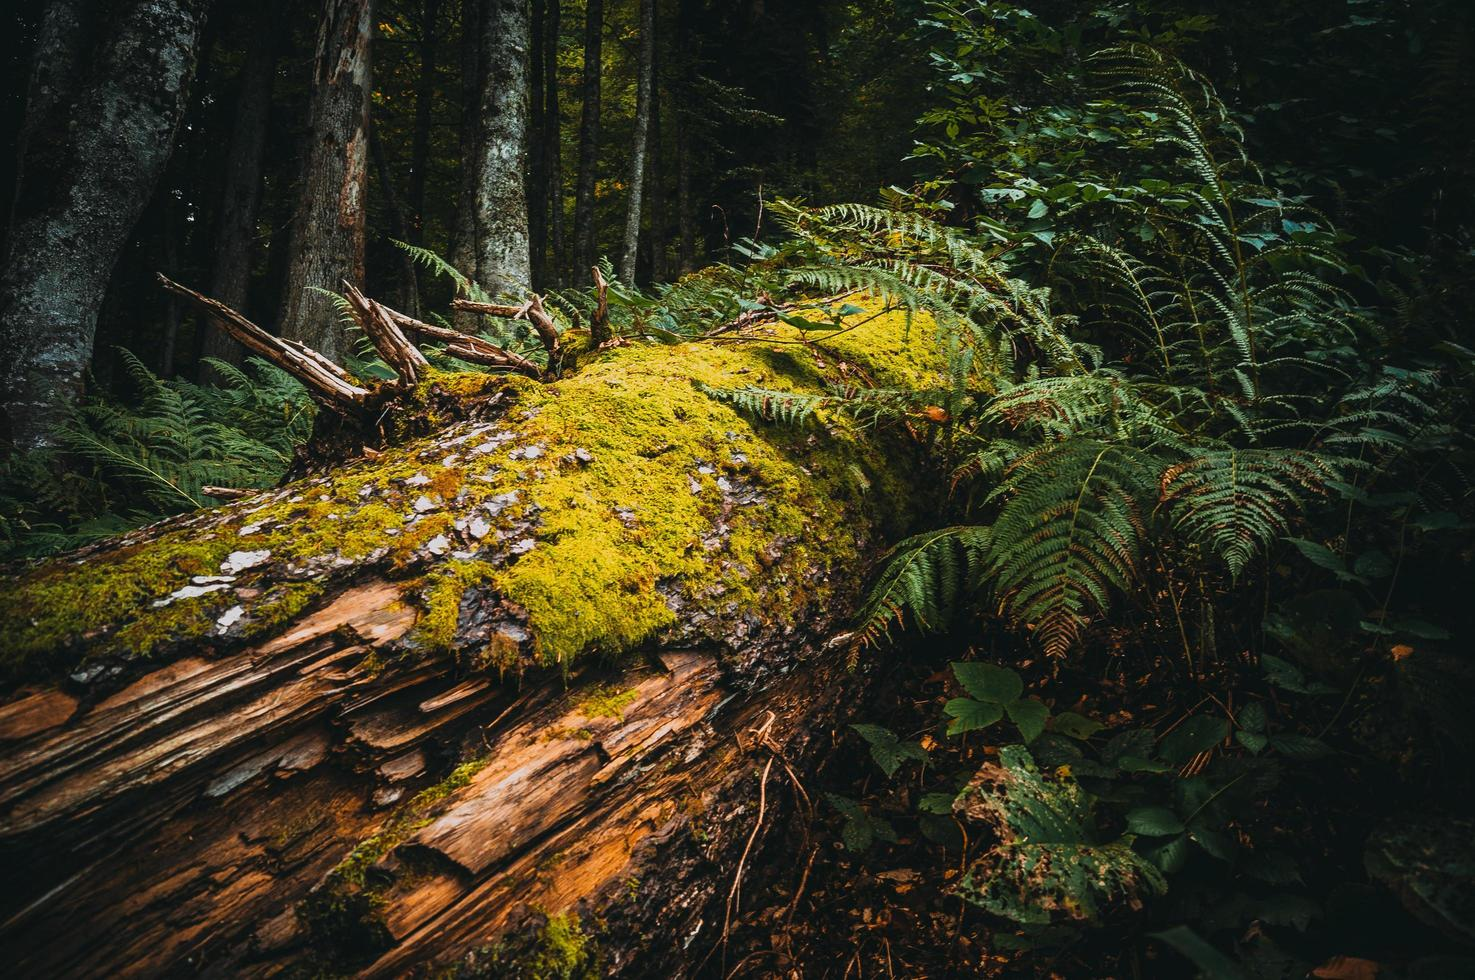 Fallen tree in forest photo